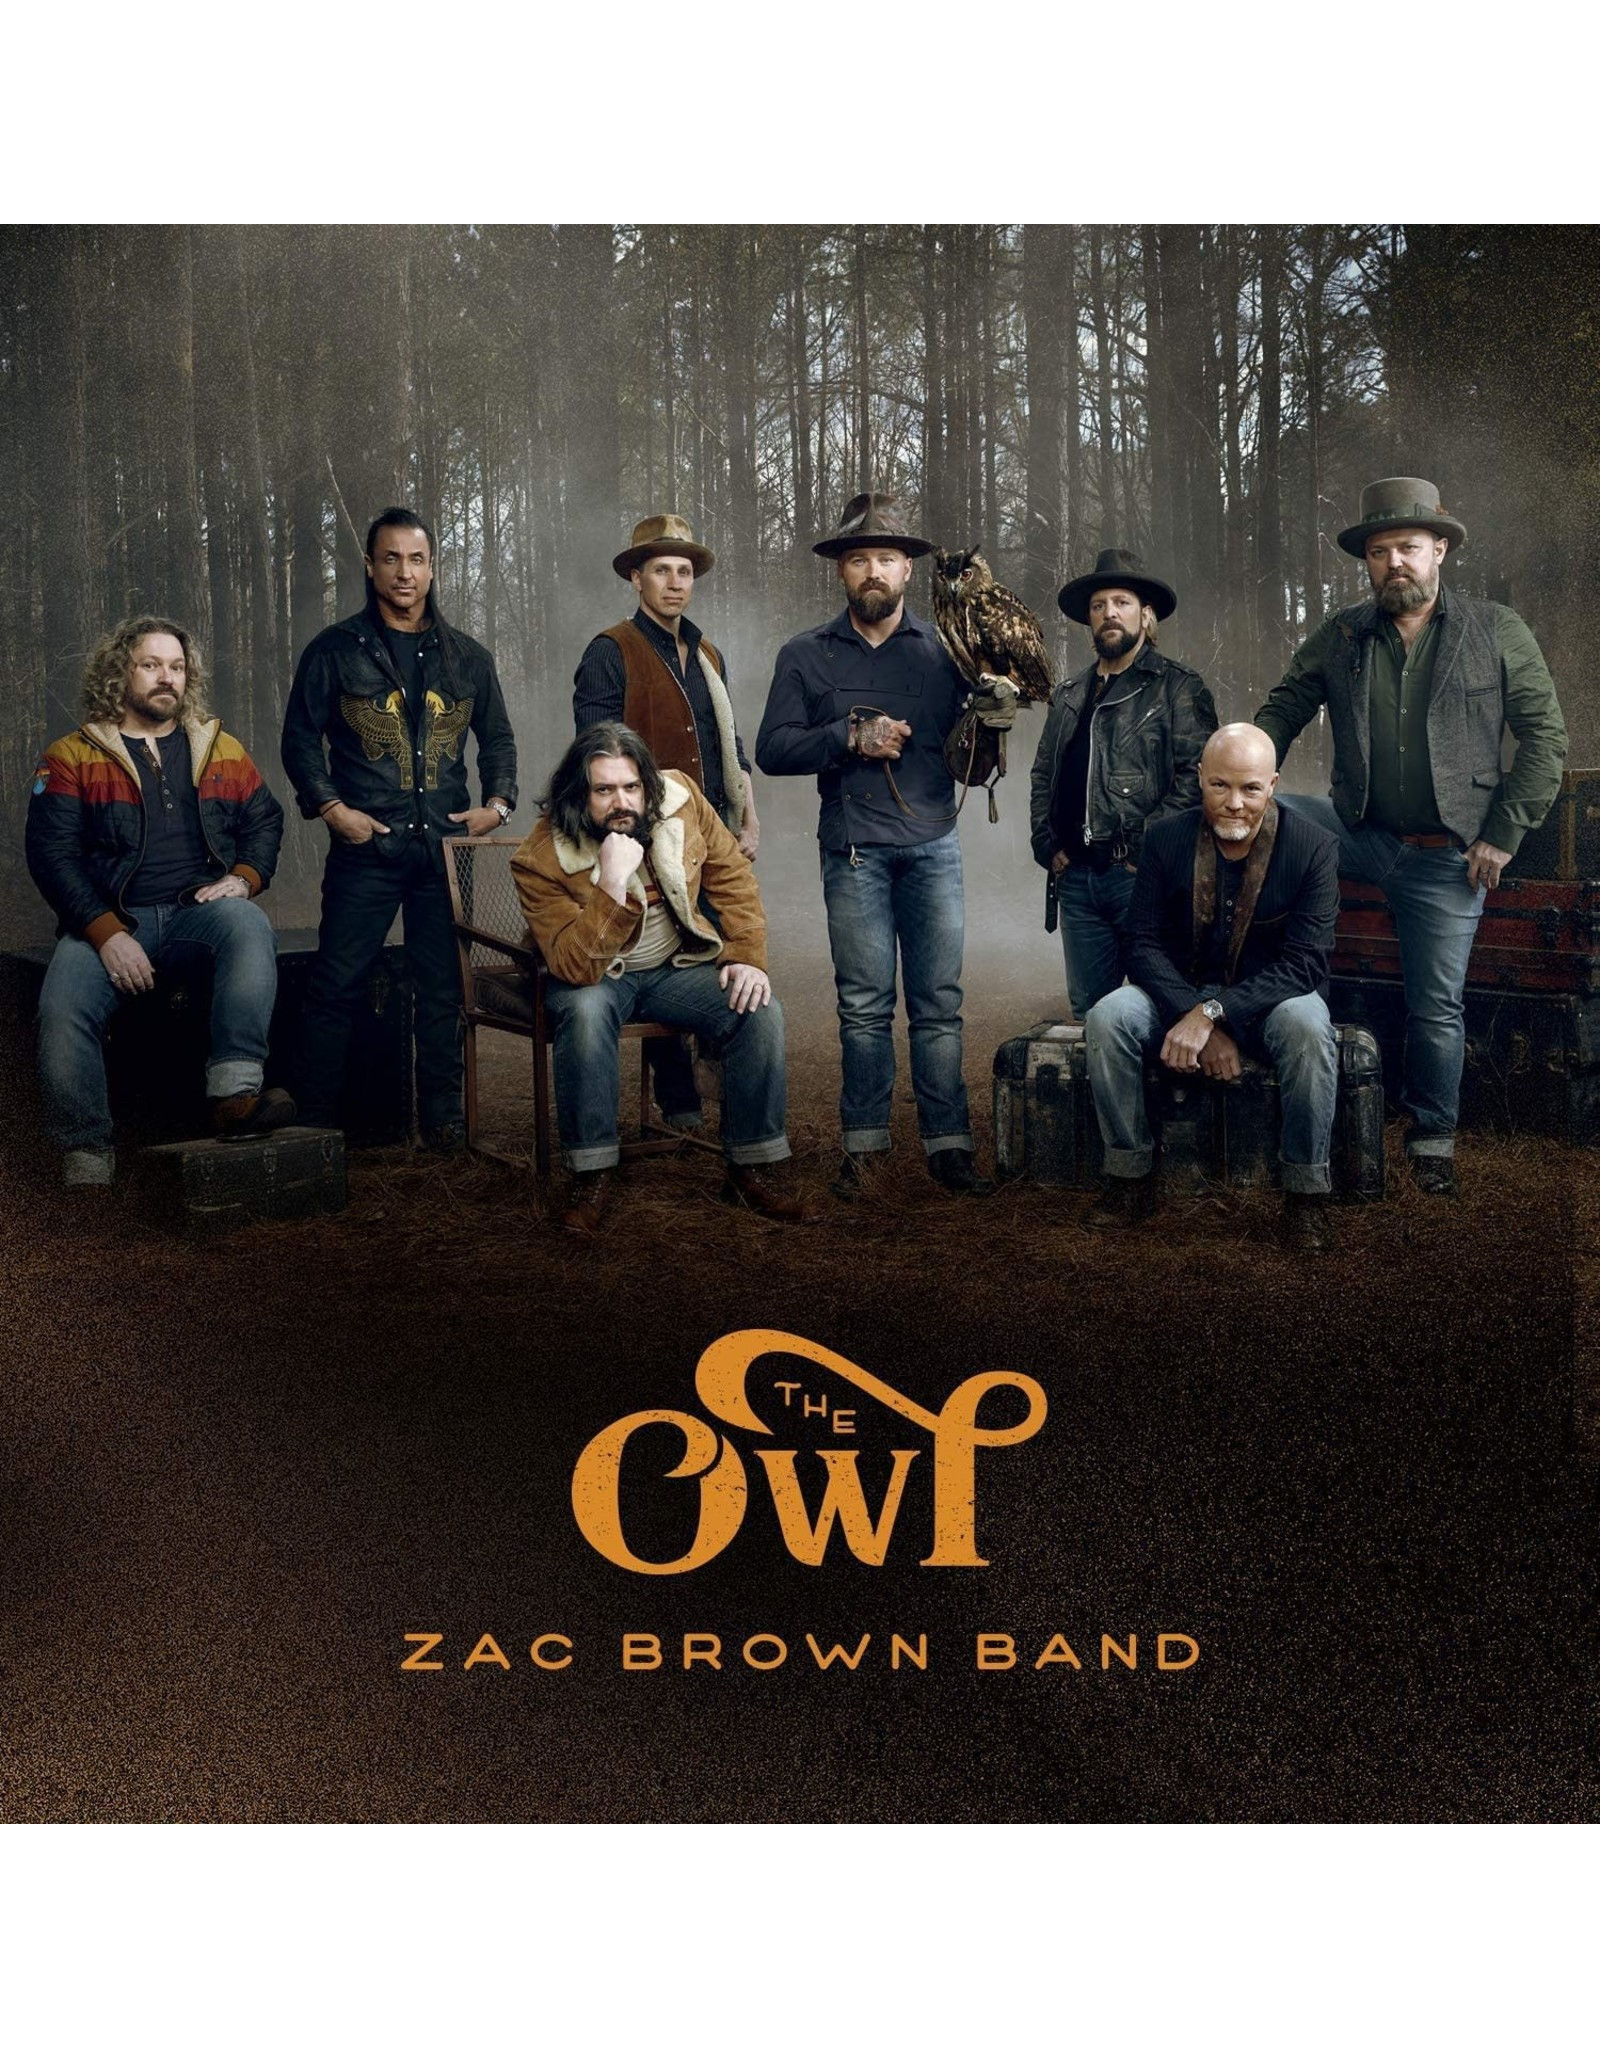 Brown, Zac Band - The Owl LP